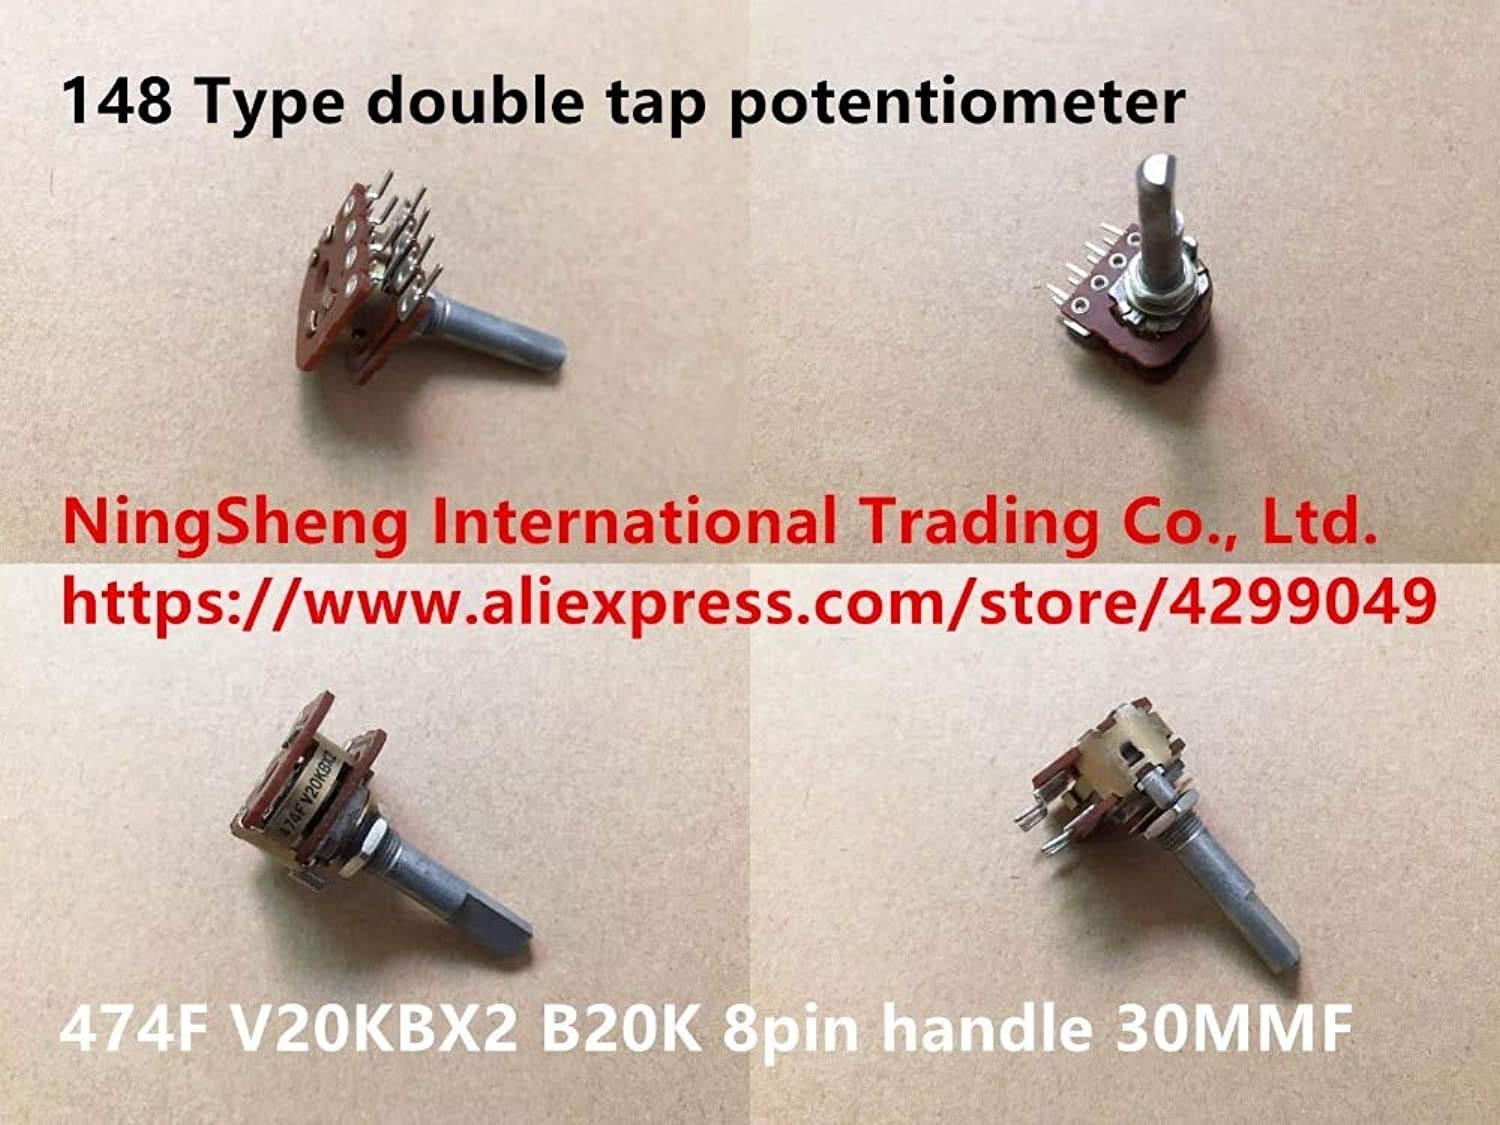 Original New 100% Import 148 Type Double tap Potentiometer 474F V20KBX2 B20K 8pin Handle 30MMF (Switch)